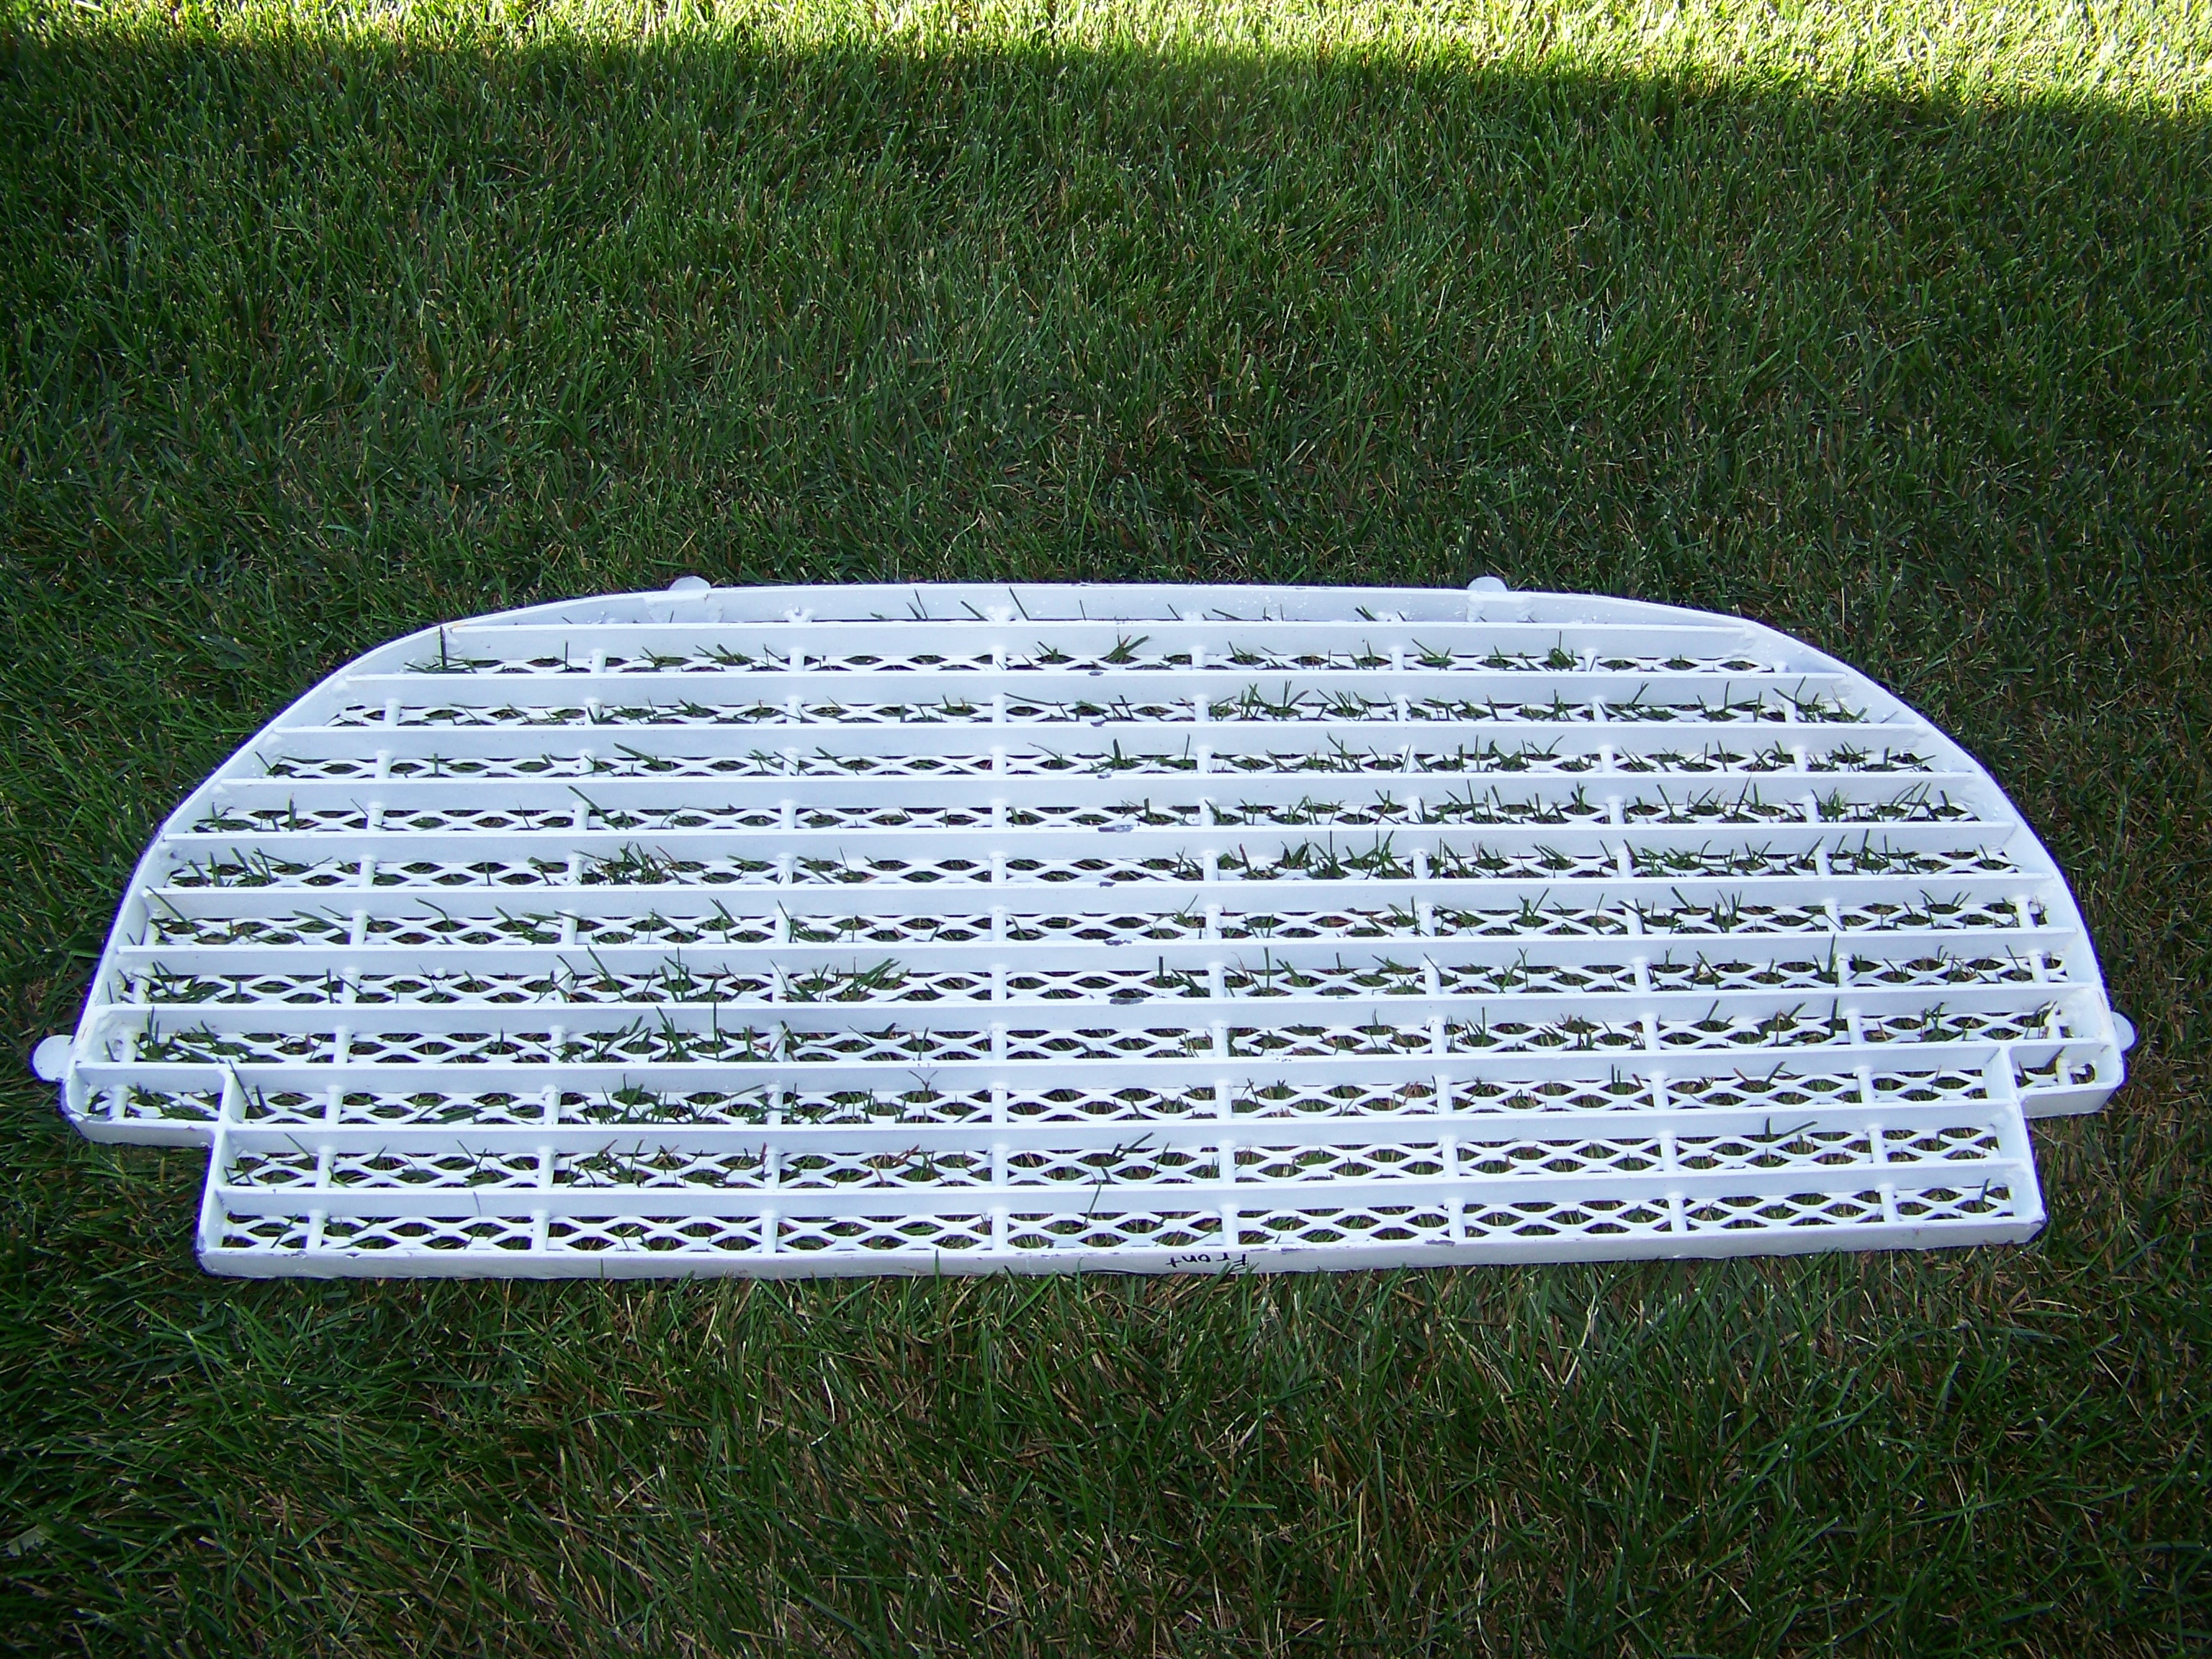 The underside of the grate.